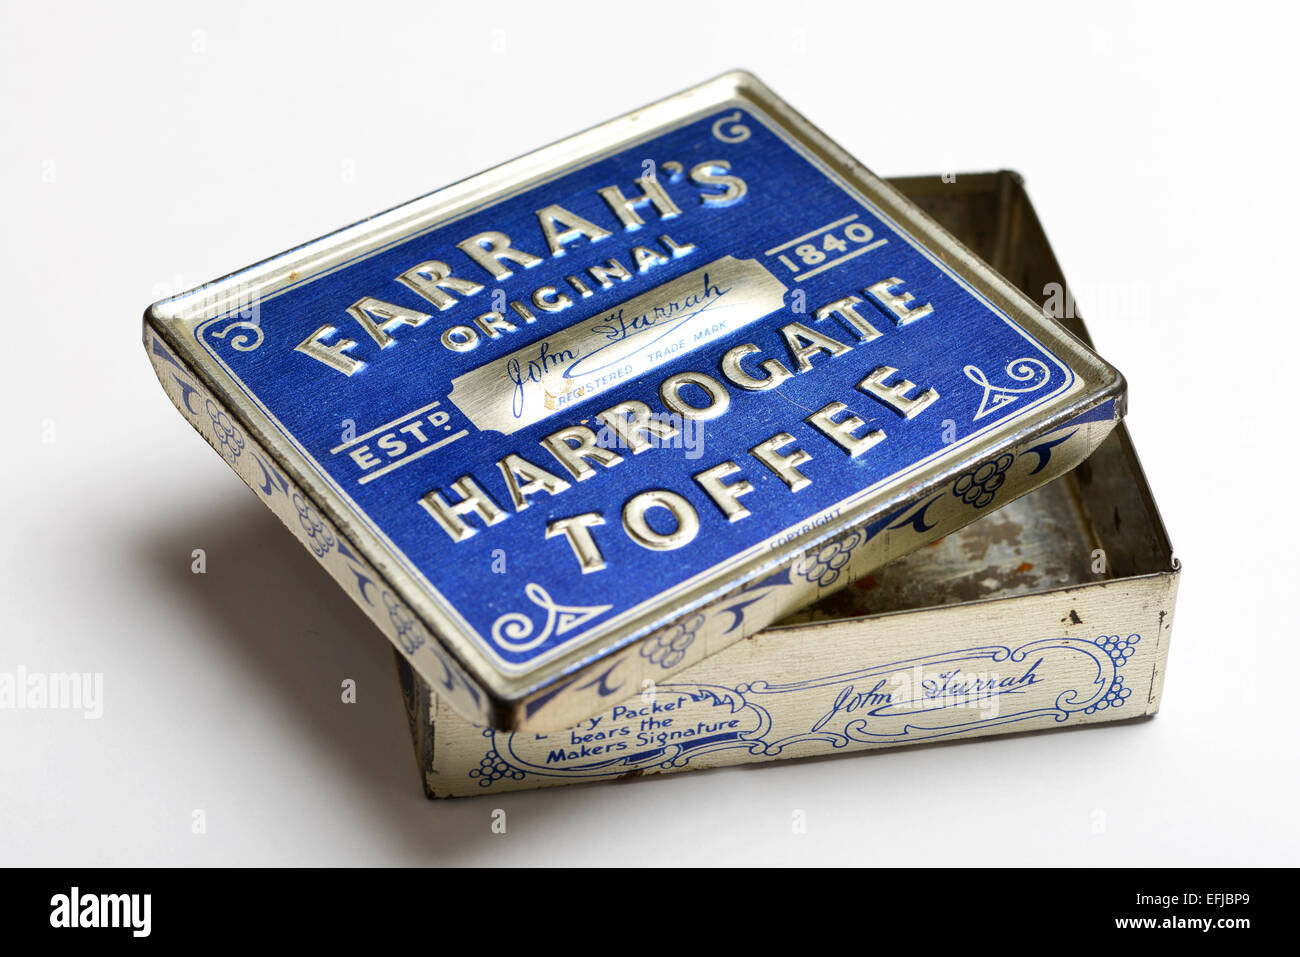 Collectable Farrah's Toffee Tin - Stock Image